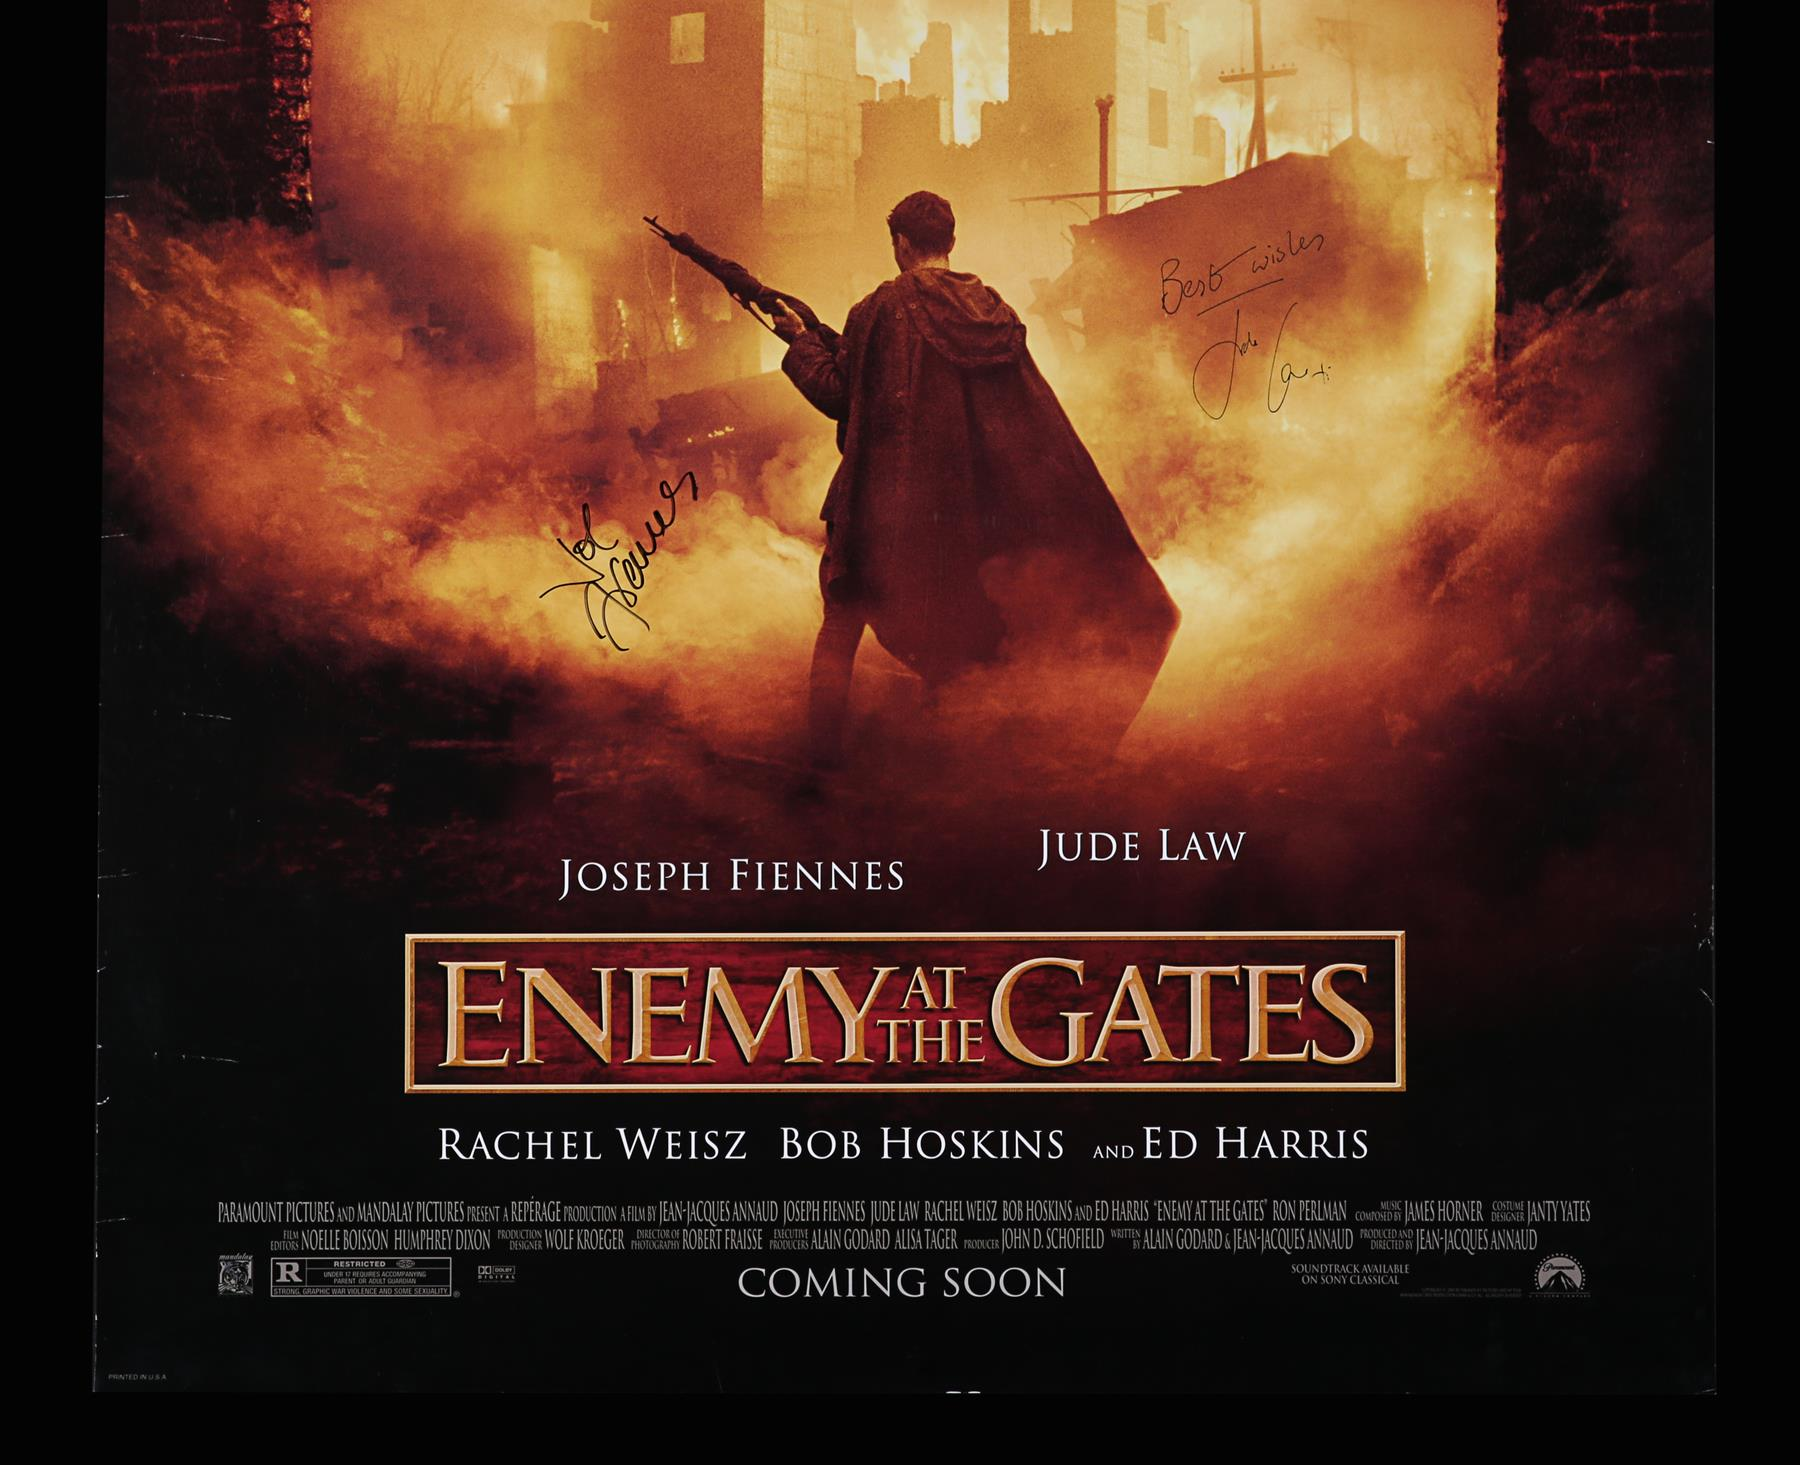 ENEMY AT THE GATES (2001) - US One-Sheet, 2001, Autographed by Jude Law and Joseph Fiennes - Image 3 of 6